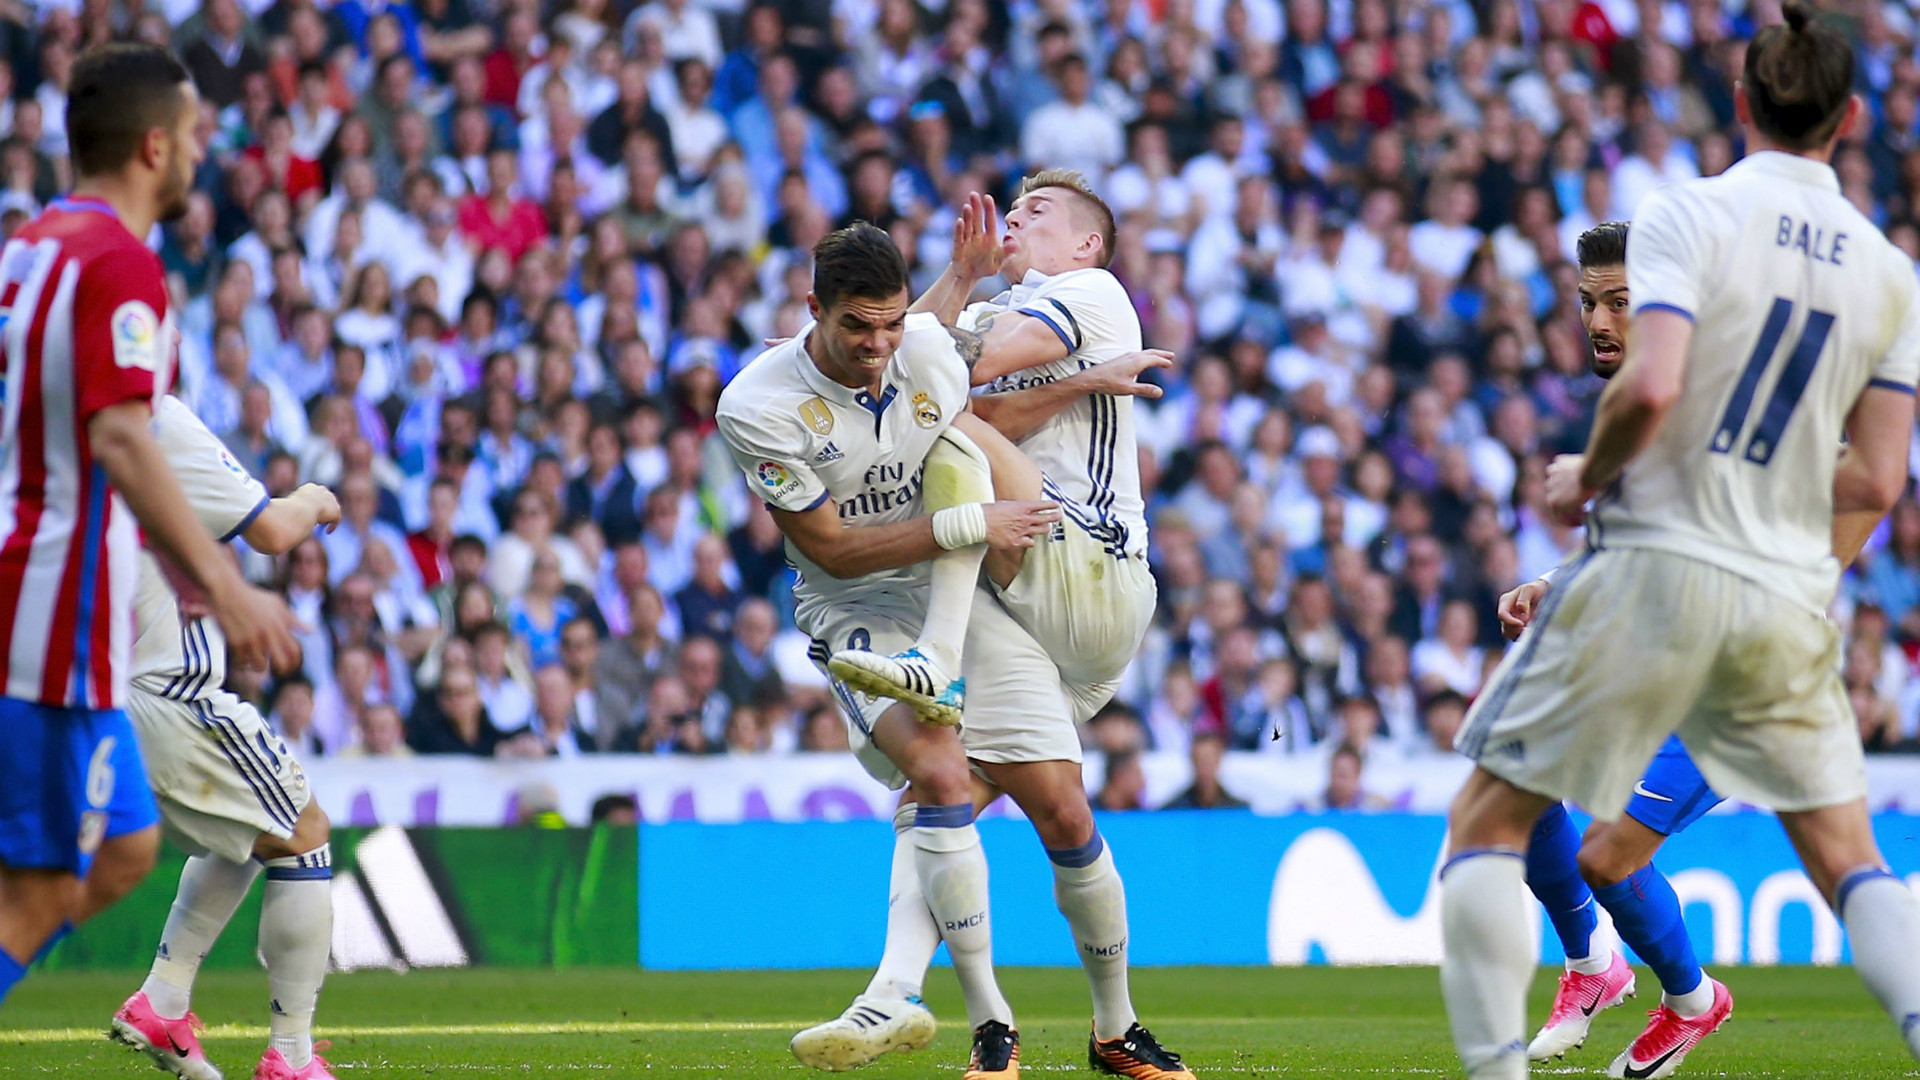 Real Madrid Confirms Pepe Broken Ribs in Madrid Derby